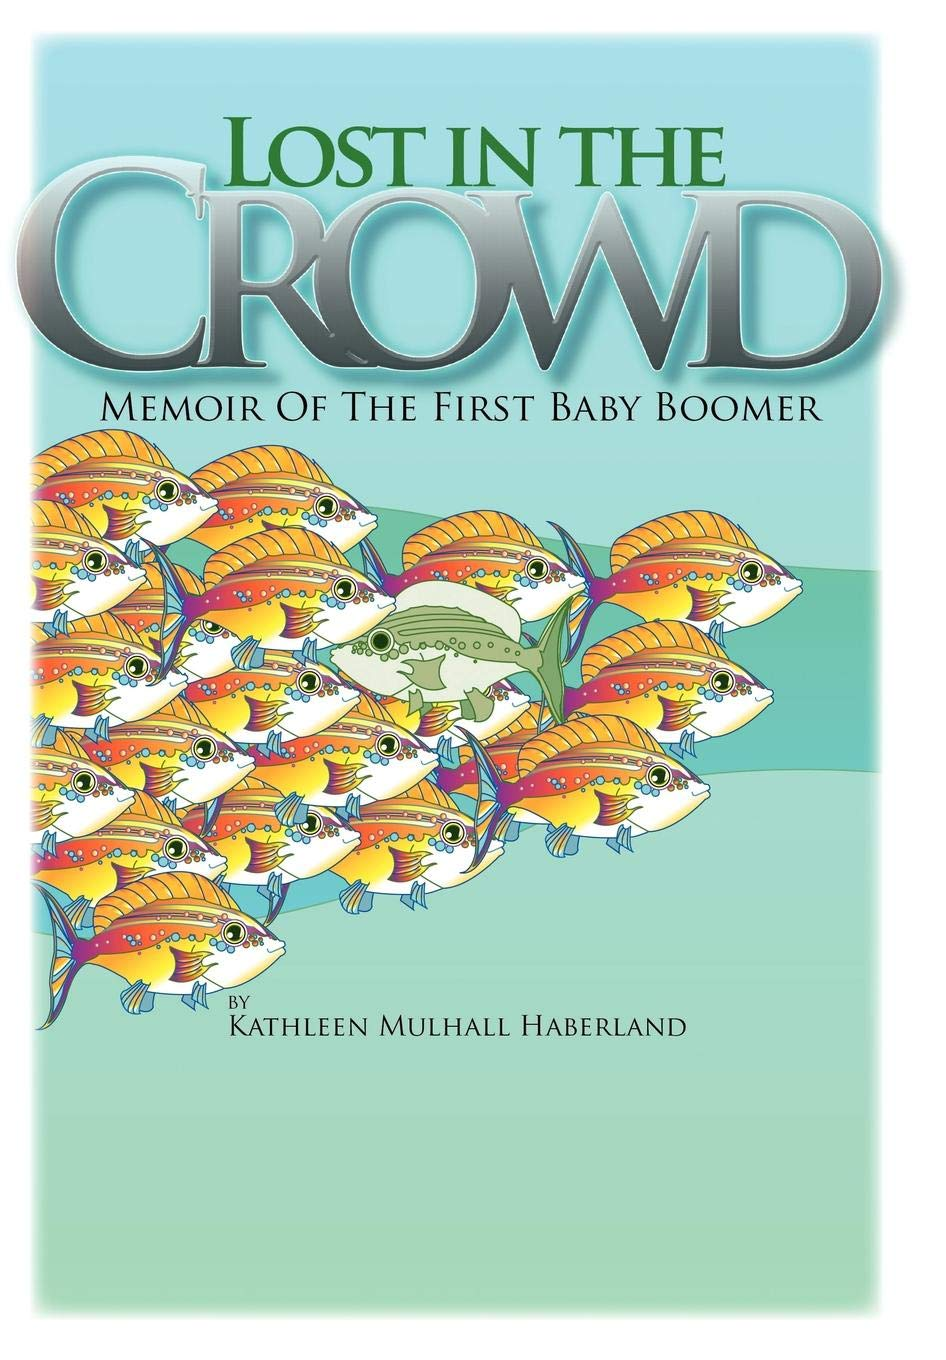 Lost in the Crowd: Memoir of the First Baby Boomer